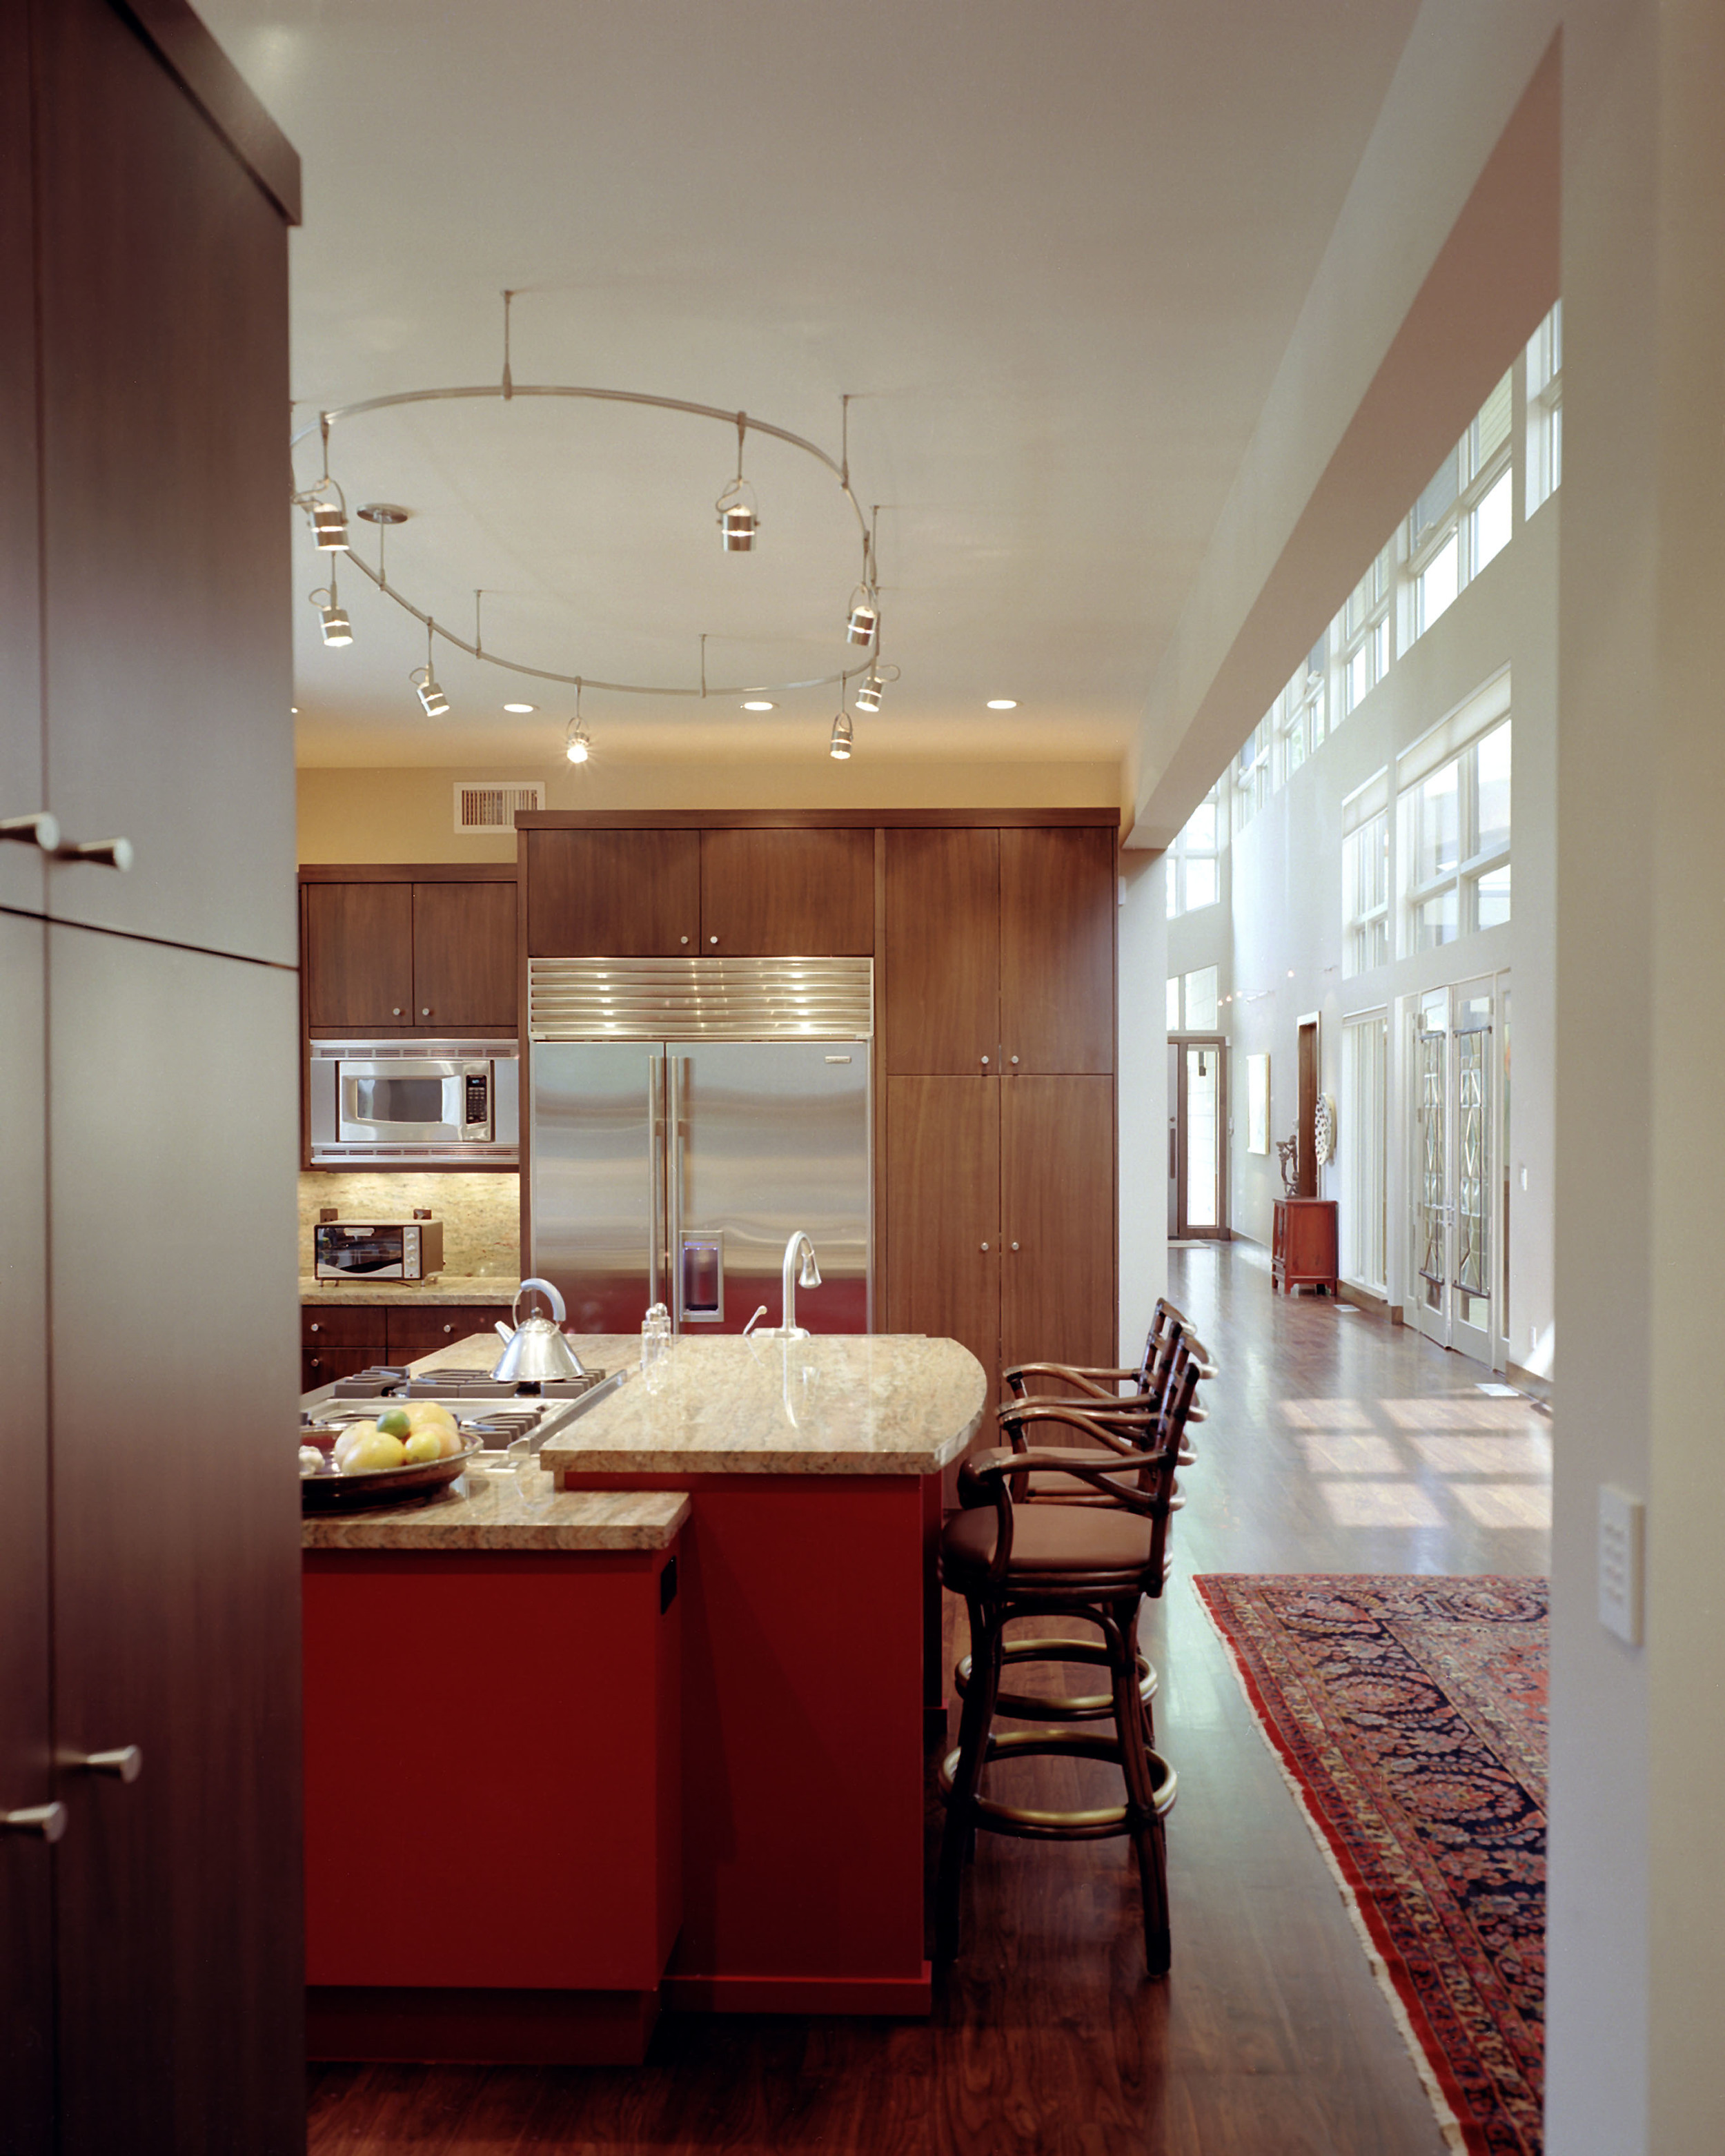 Yale_10_kitchen and gallery_LO.jpg